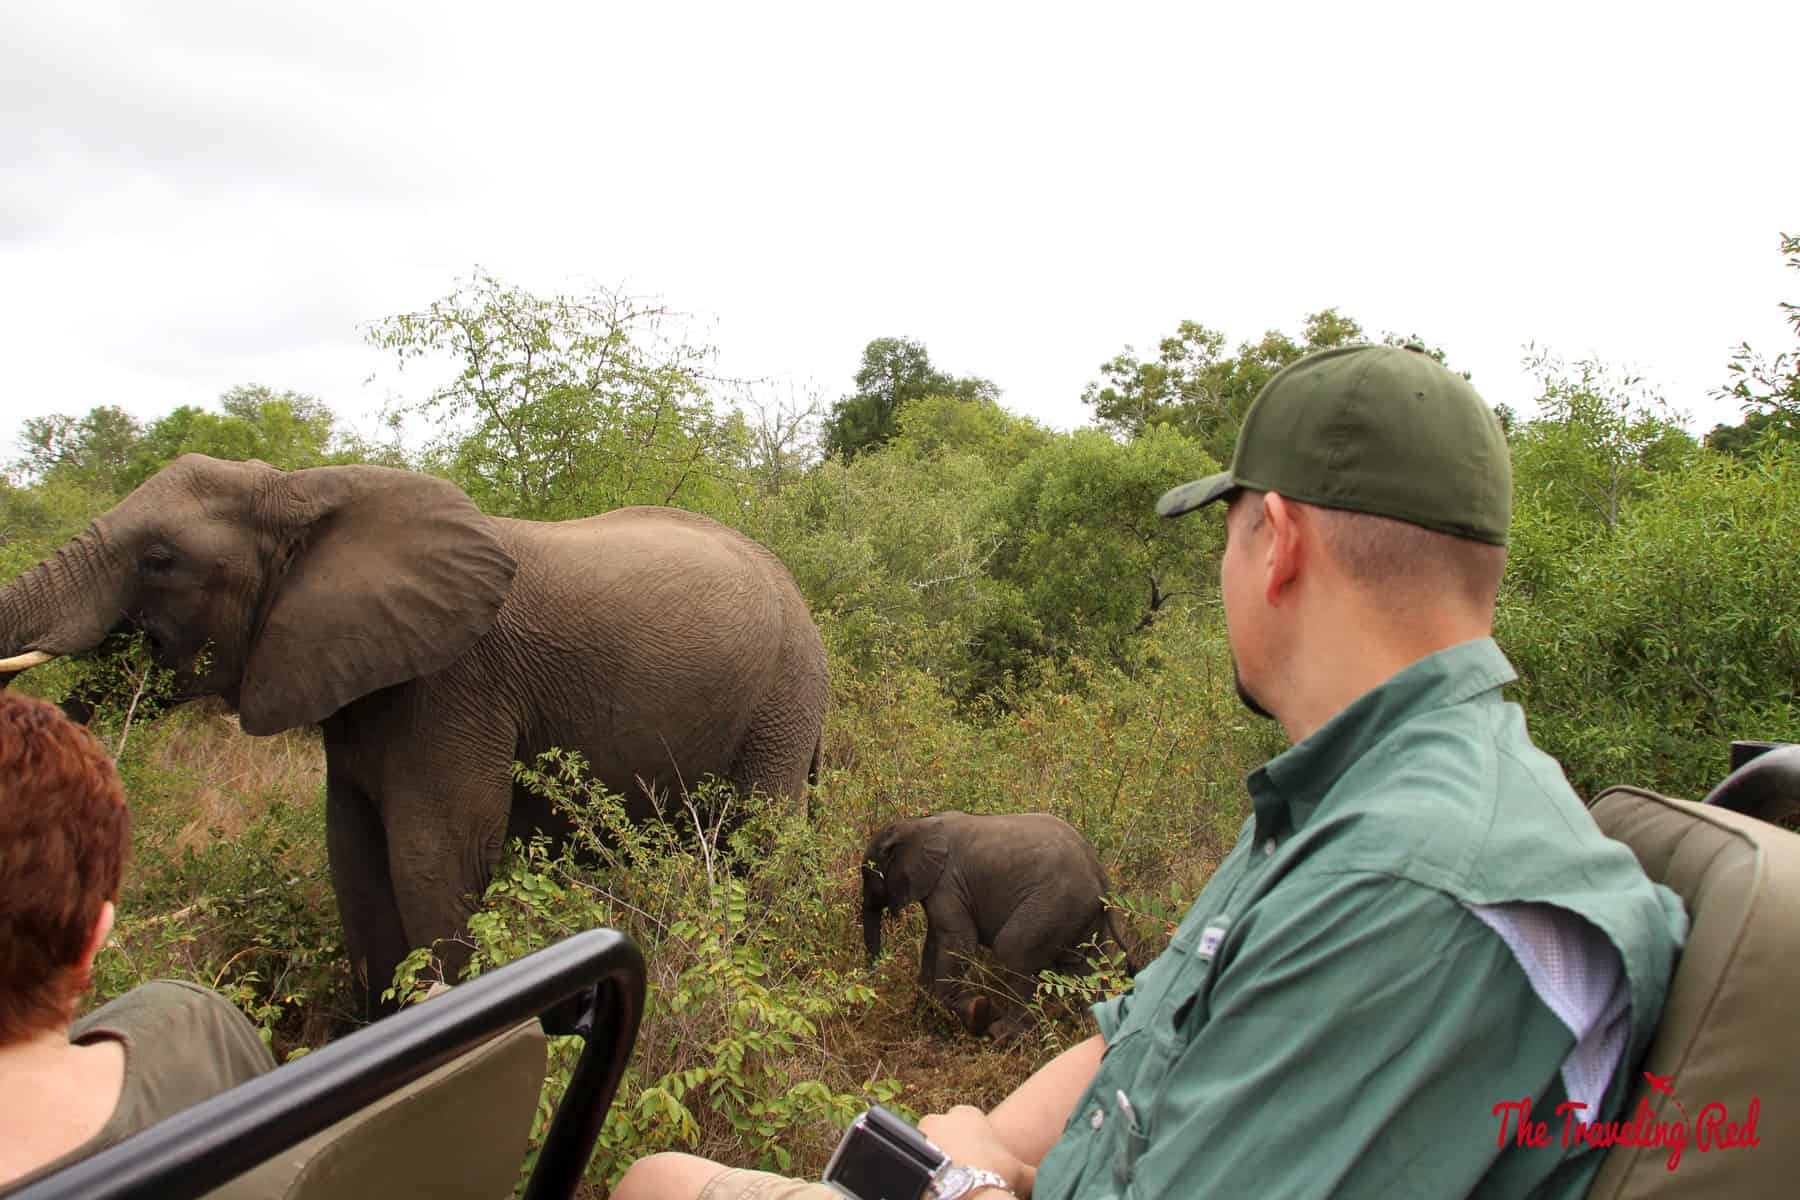 Watch the family of elephants